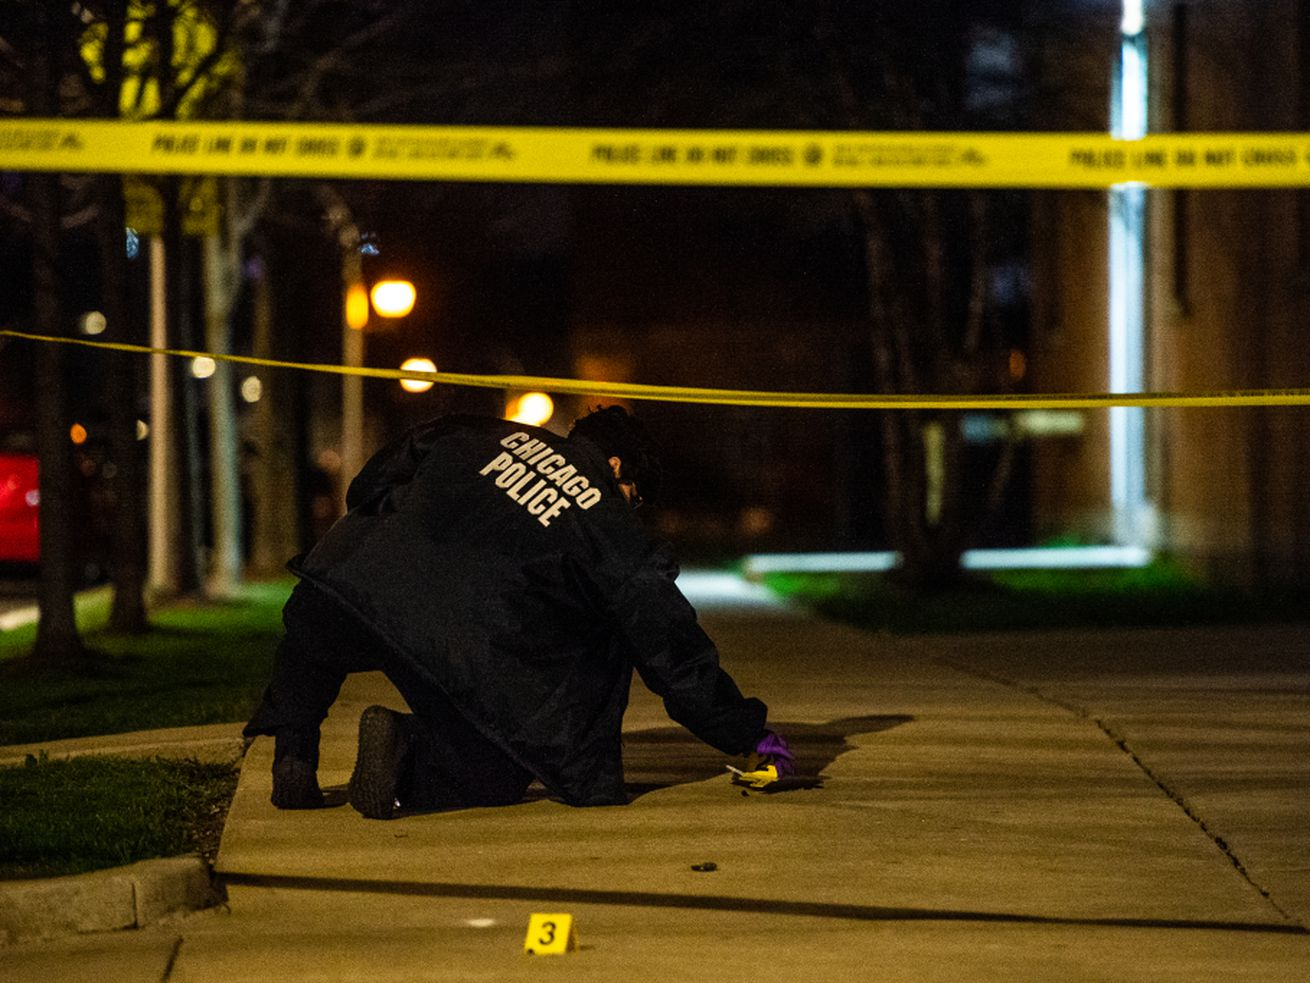 At least nine people were shot, 1 fatally, April 22, 2021 in Chicago.